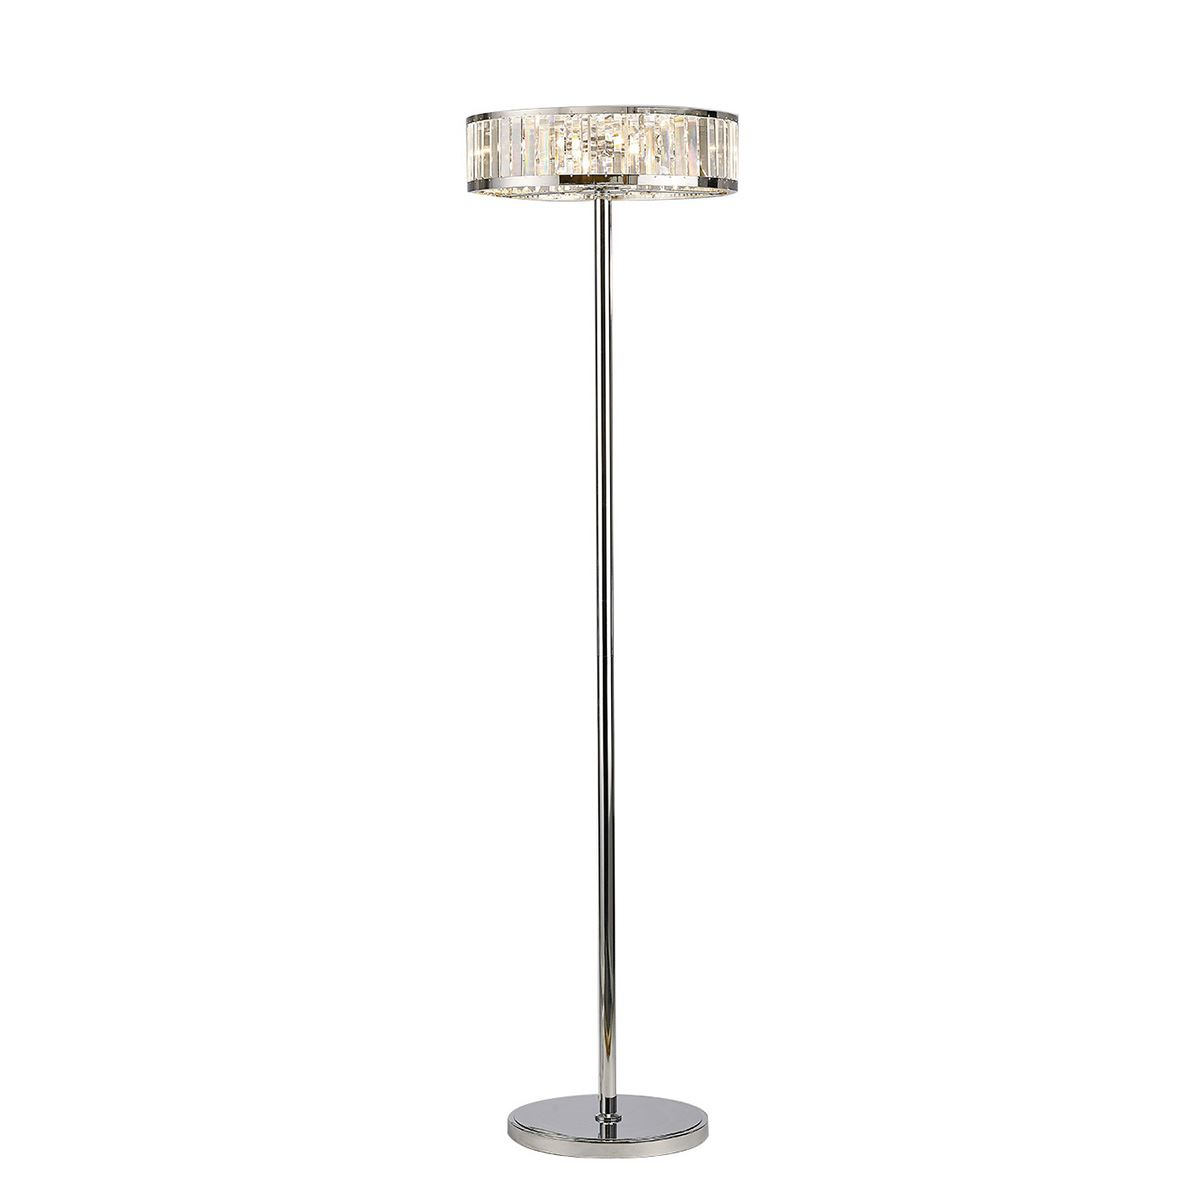 Diyas IL30177 Torre Floor Lamp 5 Light Polished Chrome/Crystal